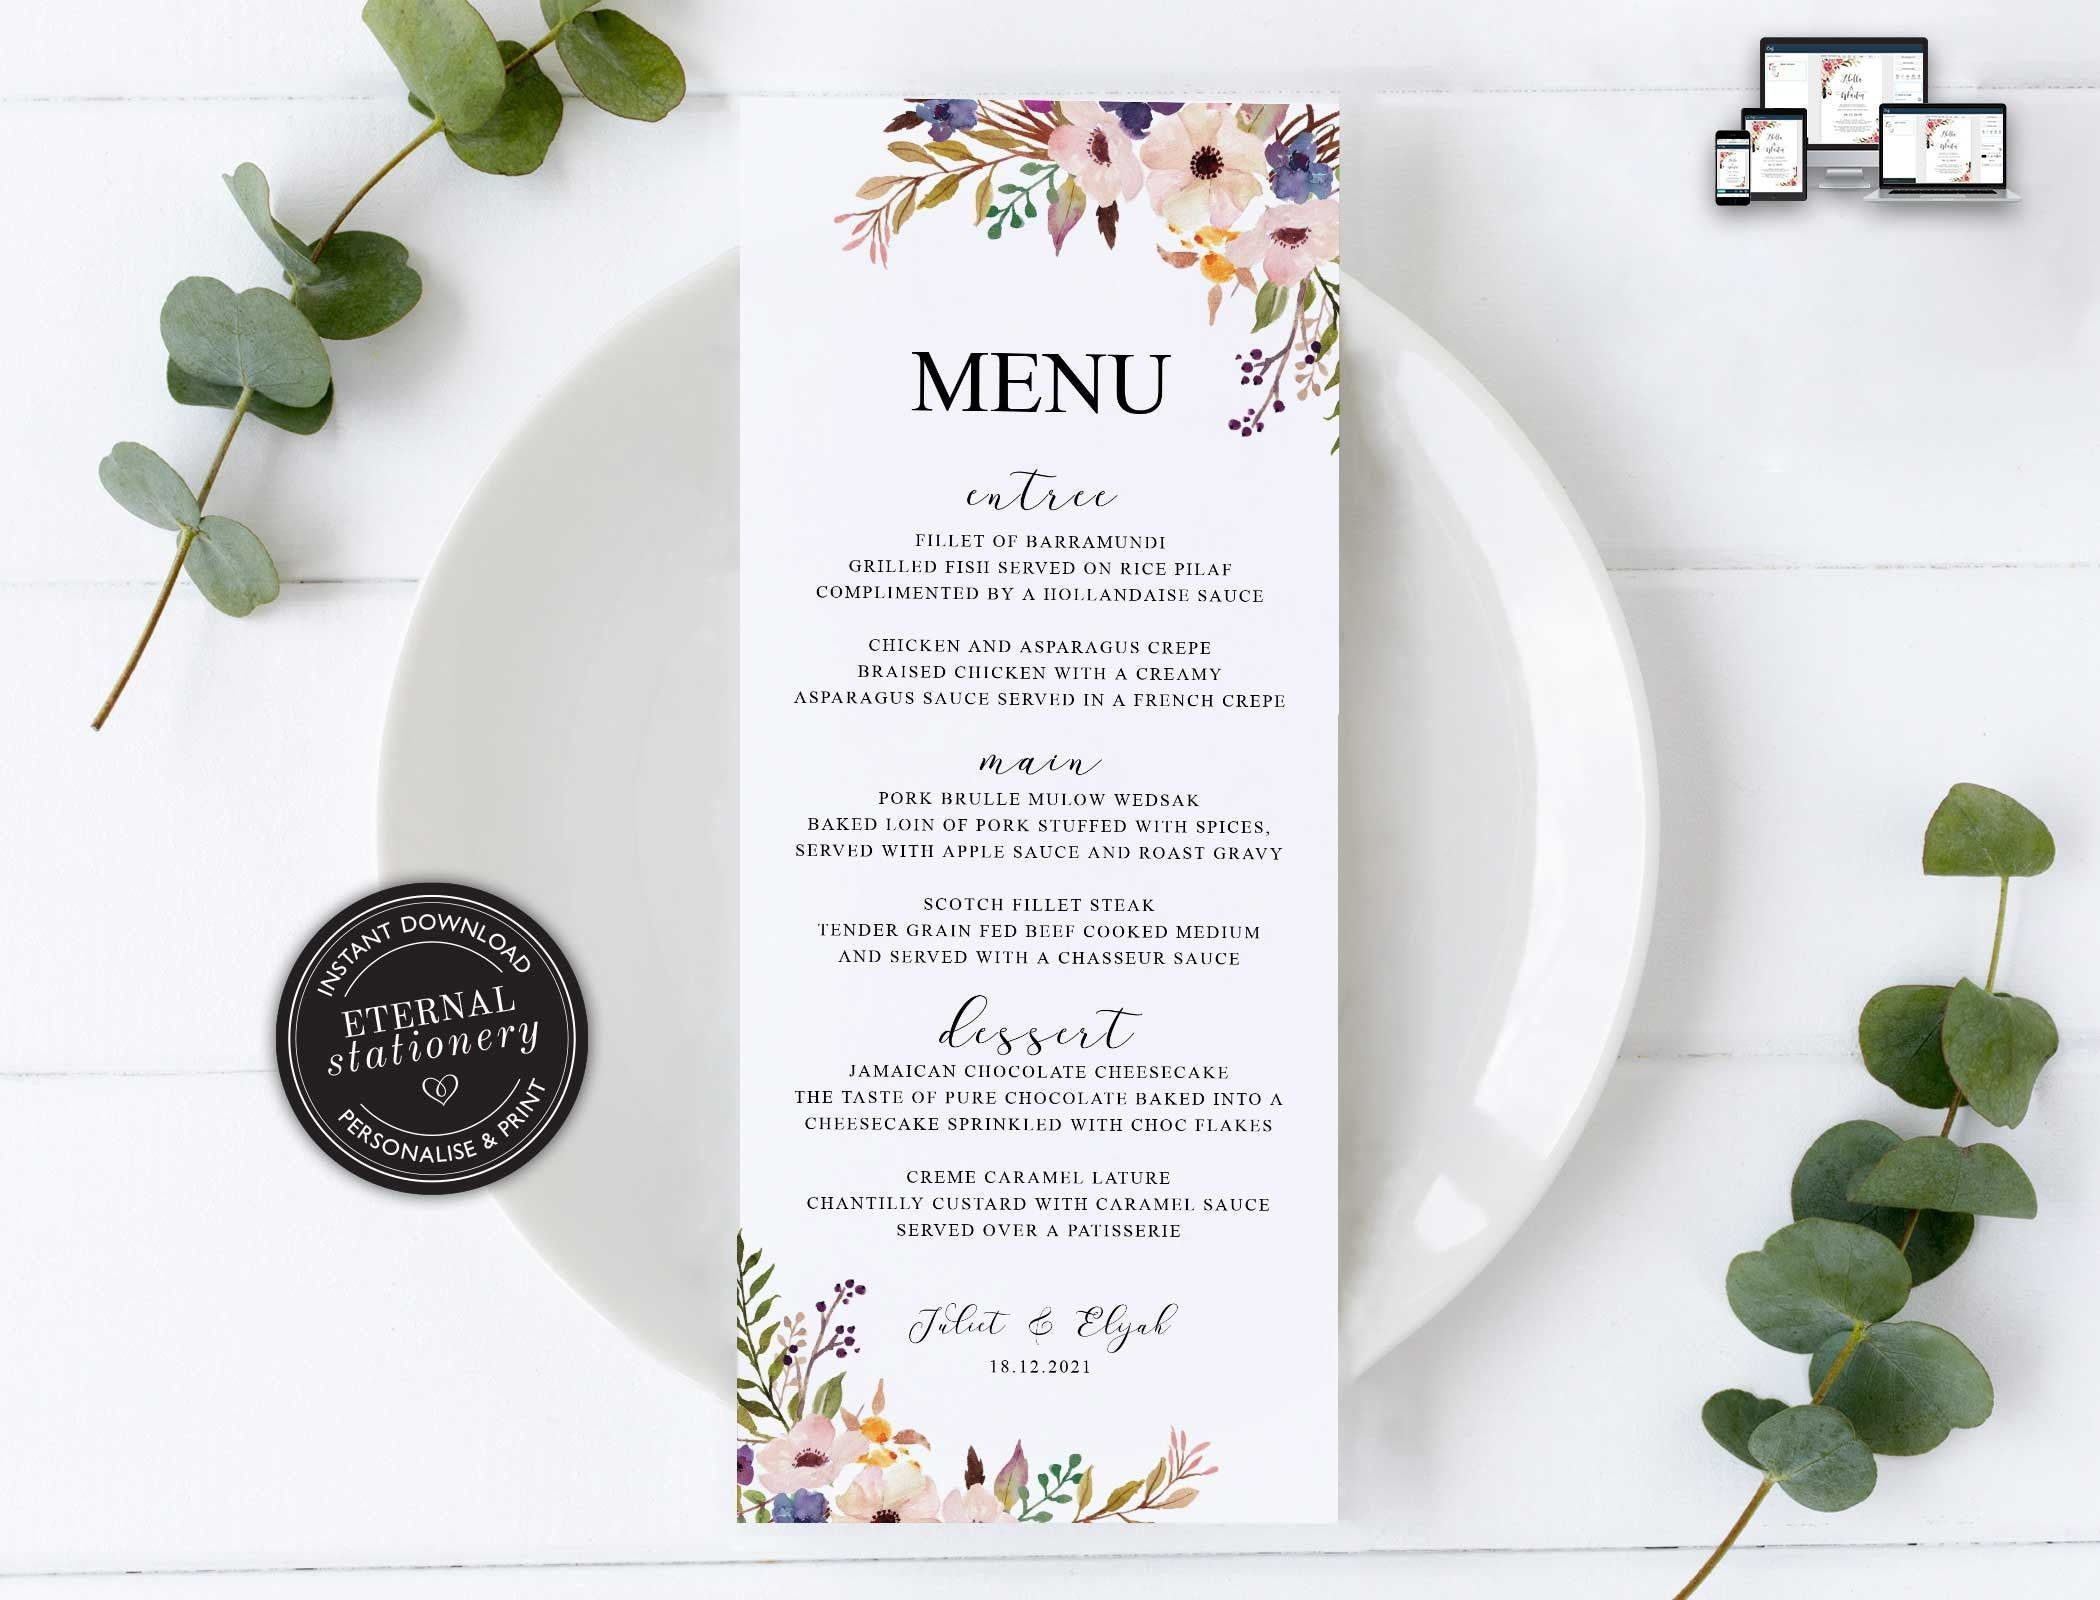 Floral Menu Template, Watercolour floral menu, Boho, posy, Editable Menu, Wedding Menu, Birthday, Christening, Baptism, Dinner menu, Juliet #weddingmenutemplate Floral Menu Template, Watercolour floral menu, Boho, posy, Editable Menu, Wedding Menu, Birthday, Christening, Baptism, Dinner menu, Juliet #weddingmenutemplate